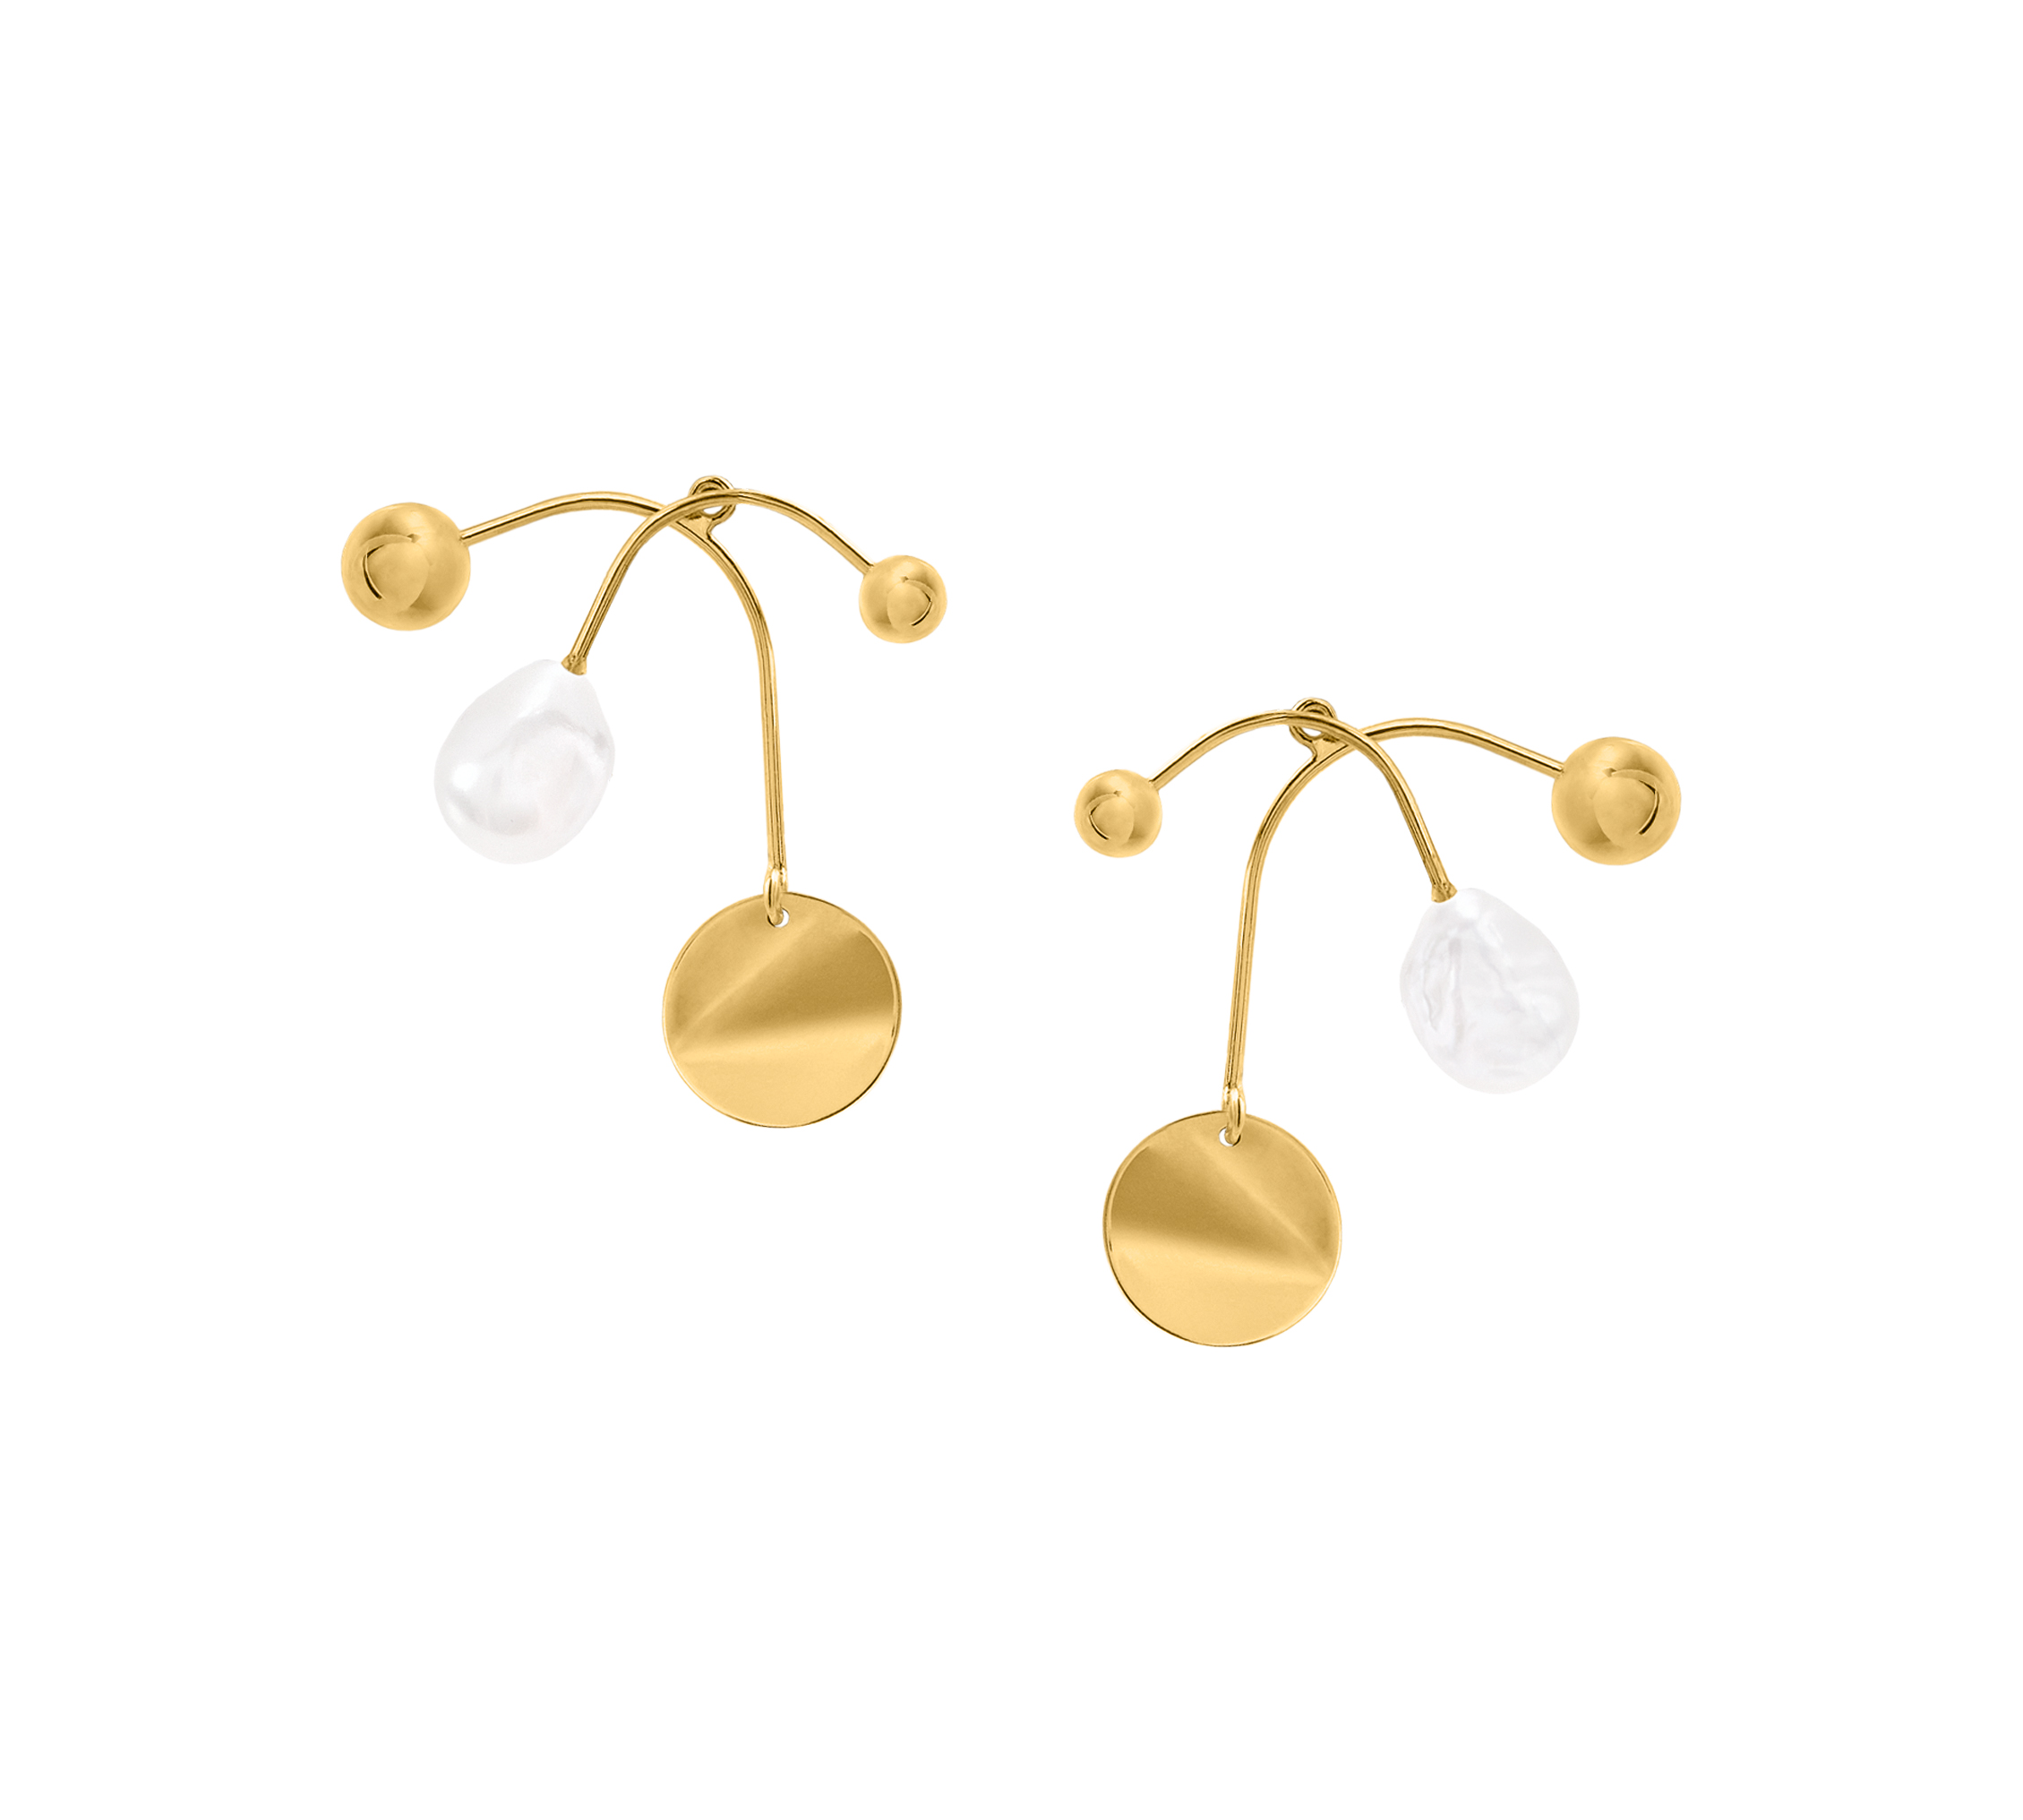 MOBILE EARRINGS- TWO PART